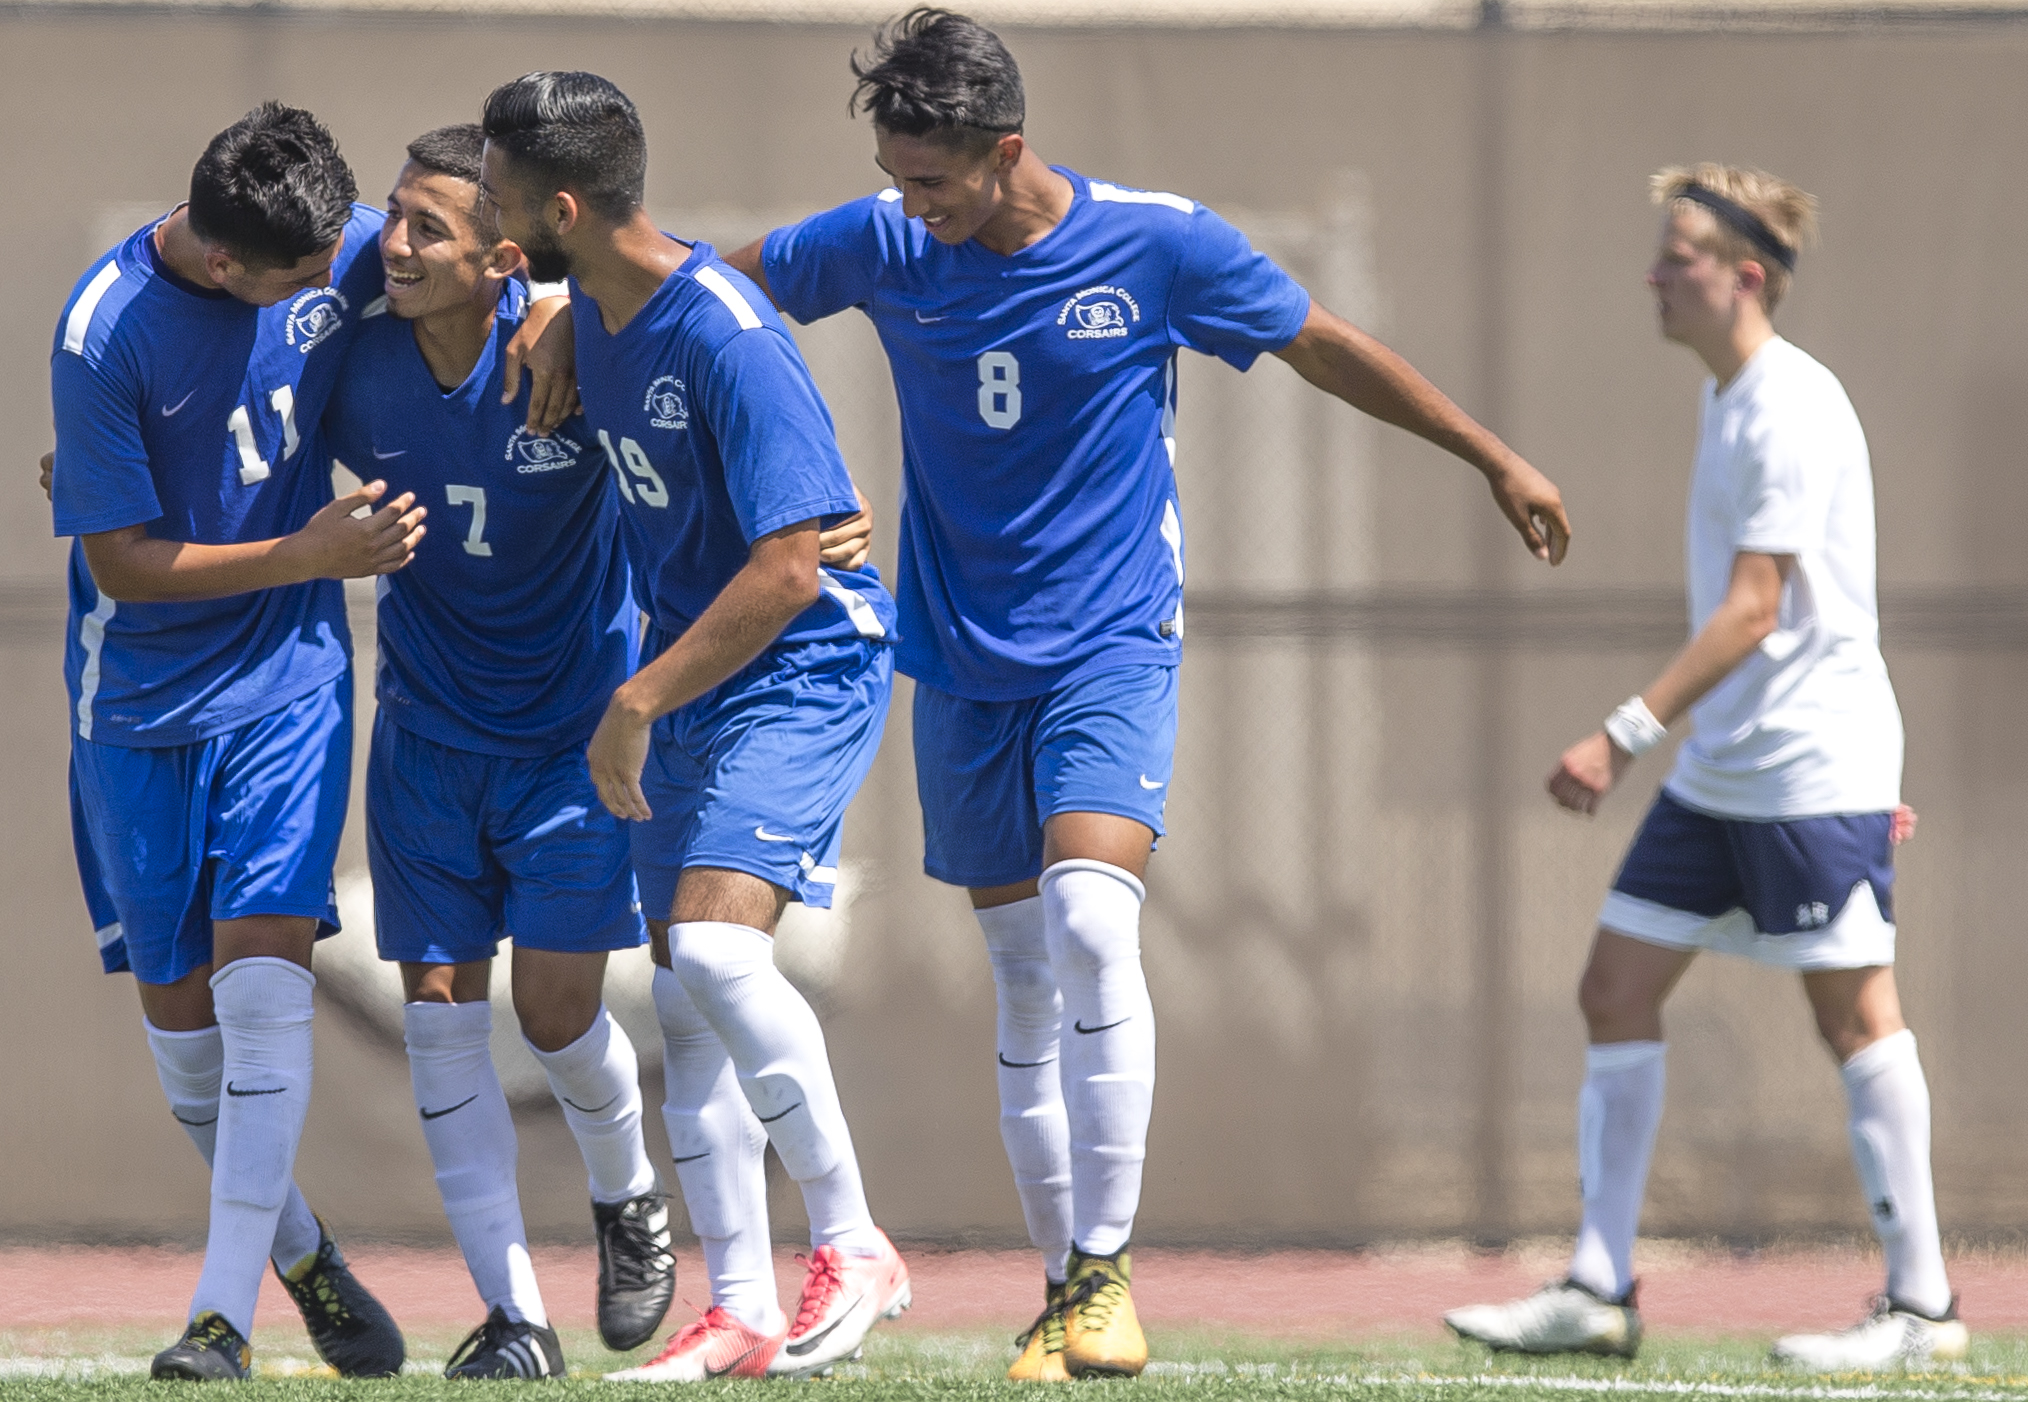 Kevin Martinez (blue,left) (7) of the Santa Monica College Corsairs mens soccer team celebrates a goal against the El Camino College Warriors with his teamates, Friday, September 1st, 2017, at the Santa Monica College Main Campus field in Santa Monica, California. The Corsairs beat The Warriors 5-1. (Daniel Bowyer/Corsair Staff)